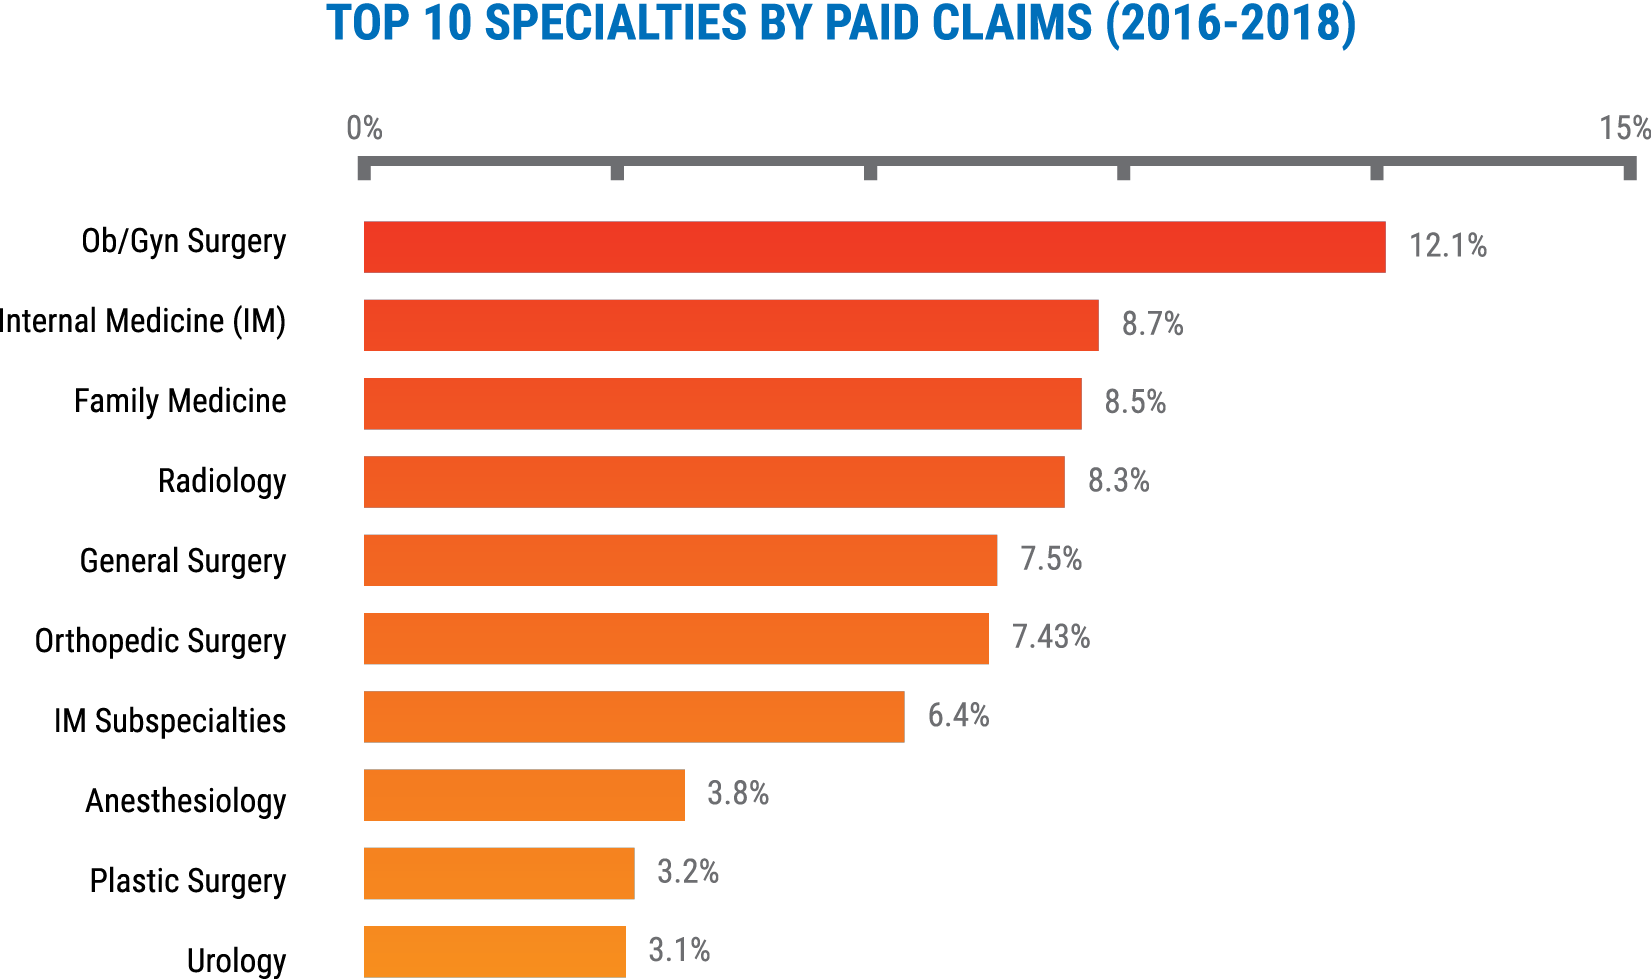 Top 10 specialties by paid claims